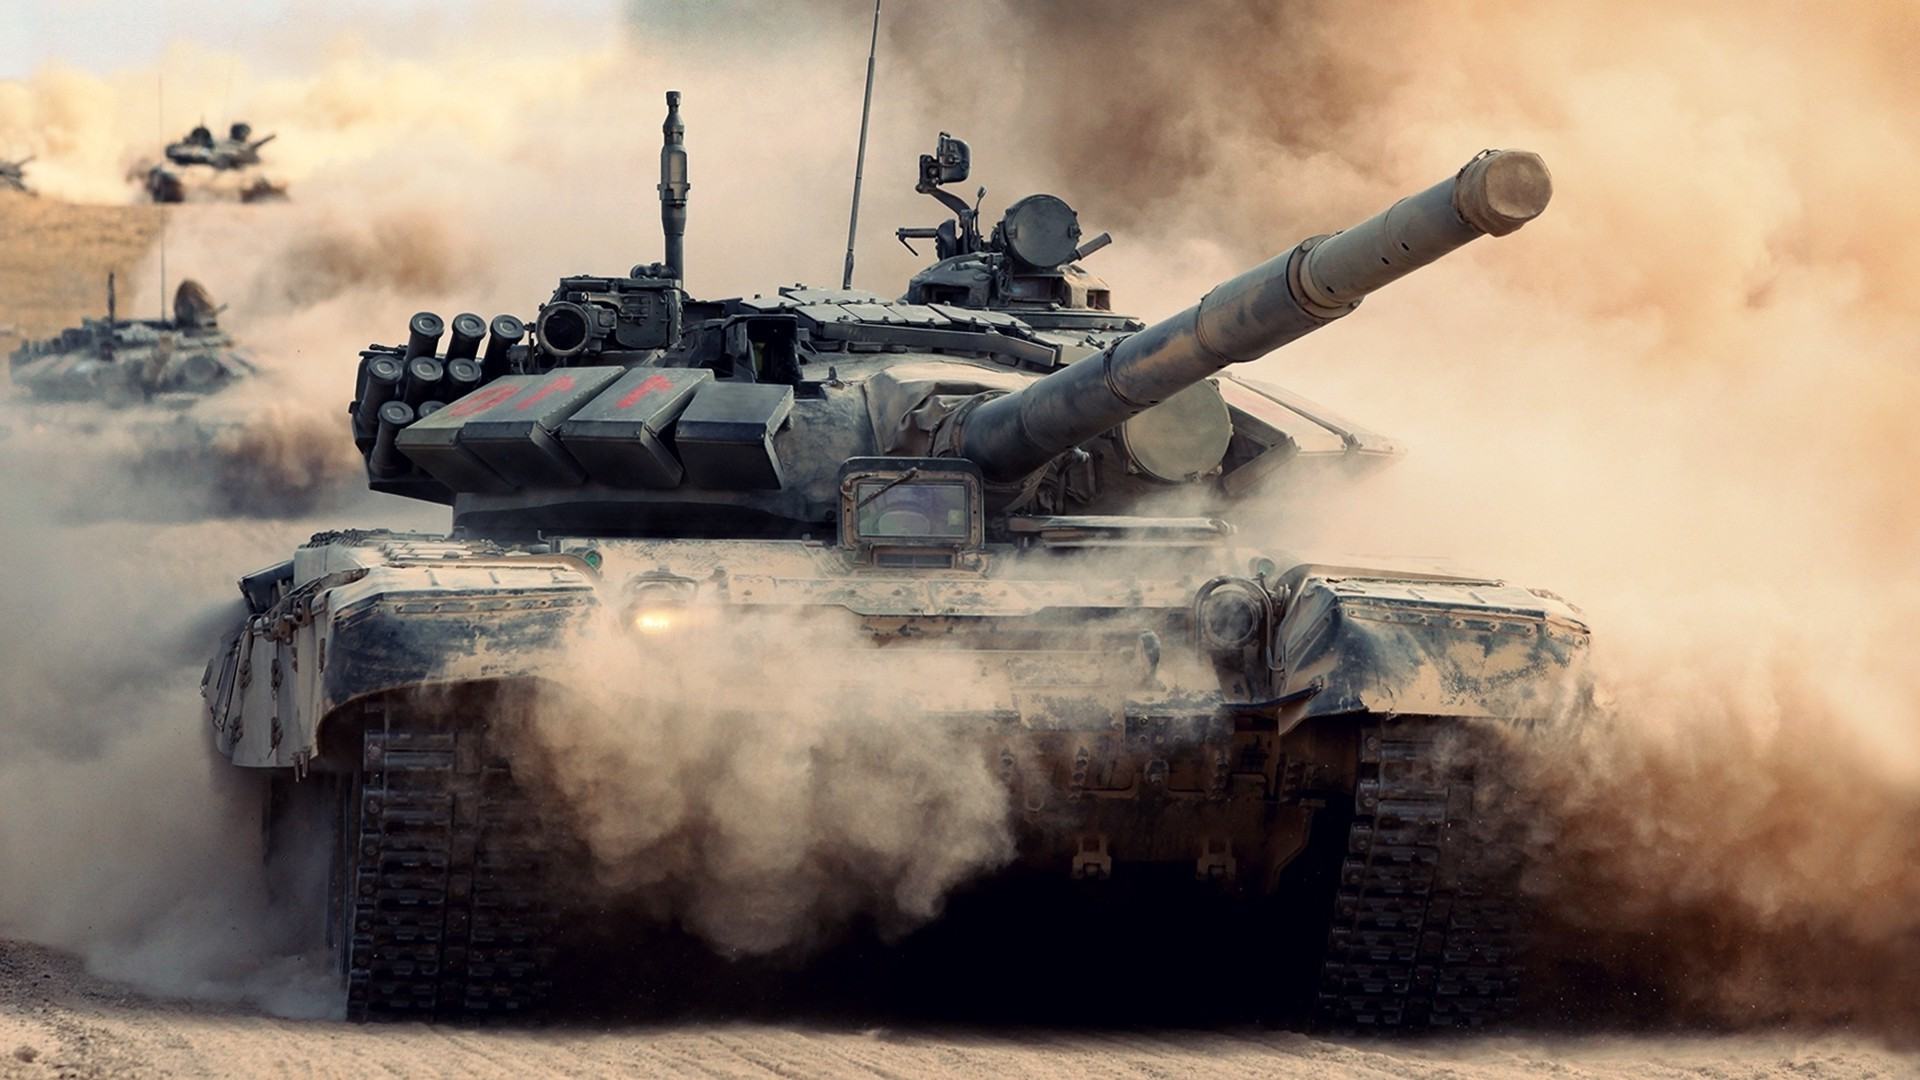 ground-based techniques military war weapon army tank battle vehicle gun combat military vehicle soldier transportation system armor flame cannon smoke camouflage bomb